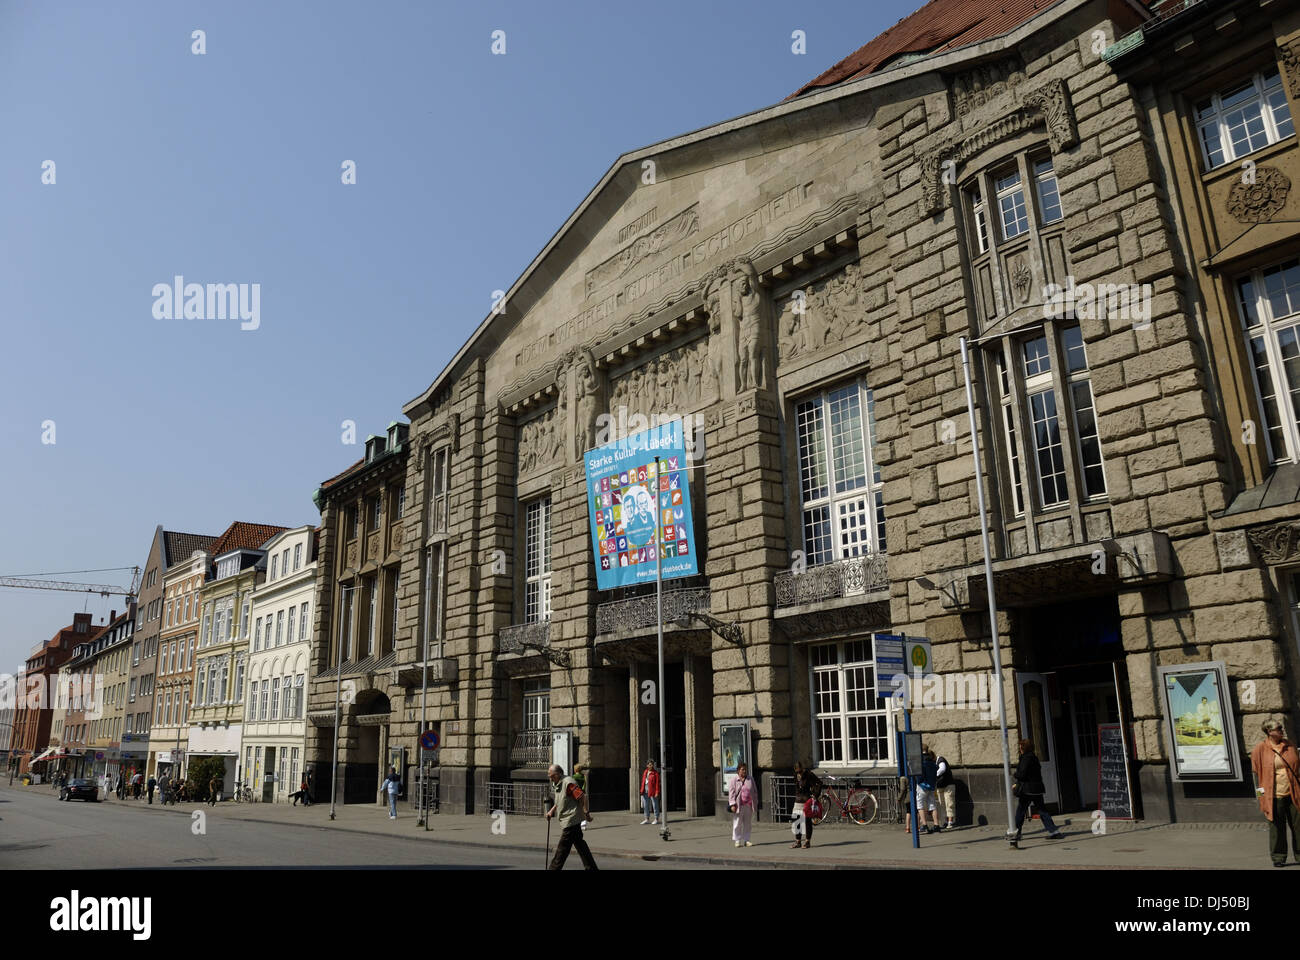 Town Theatre in Lubeck - Stock Image